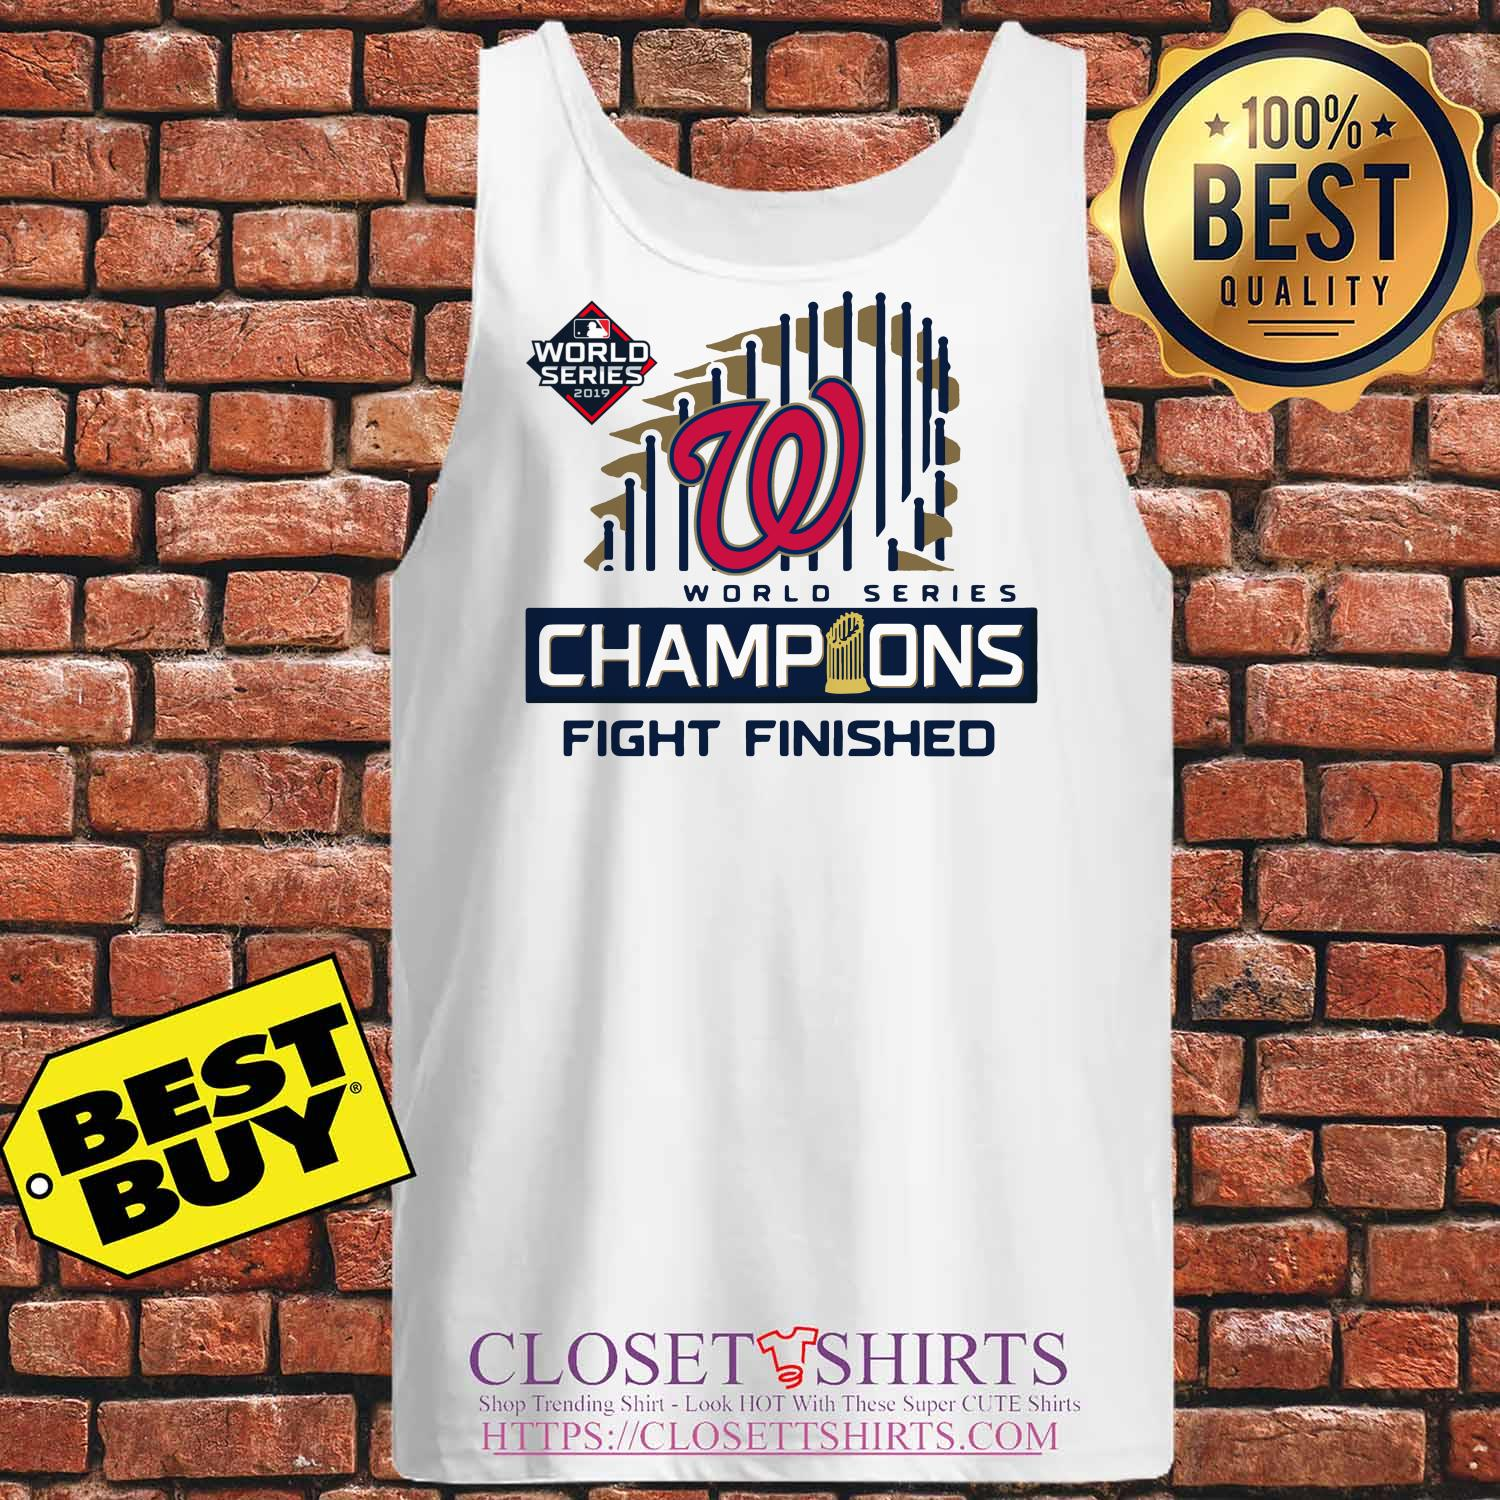 Washington Nationals 2019 World Series Champions Fight Finished tank top